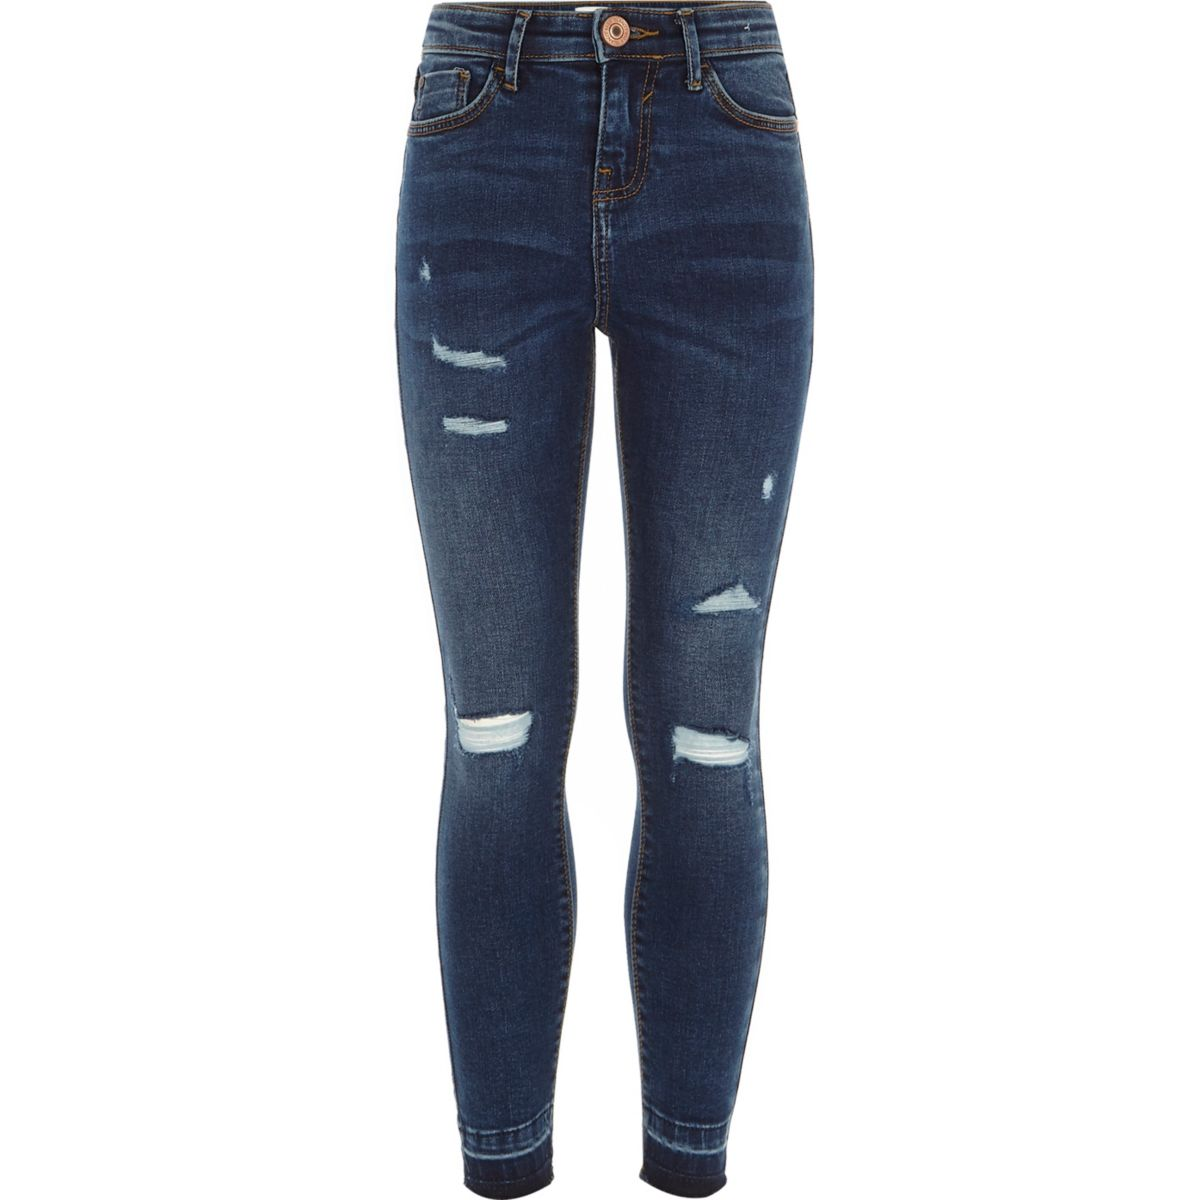 Find great deals on eBay for girls ripped jeans. Shop with confidence.